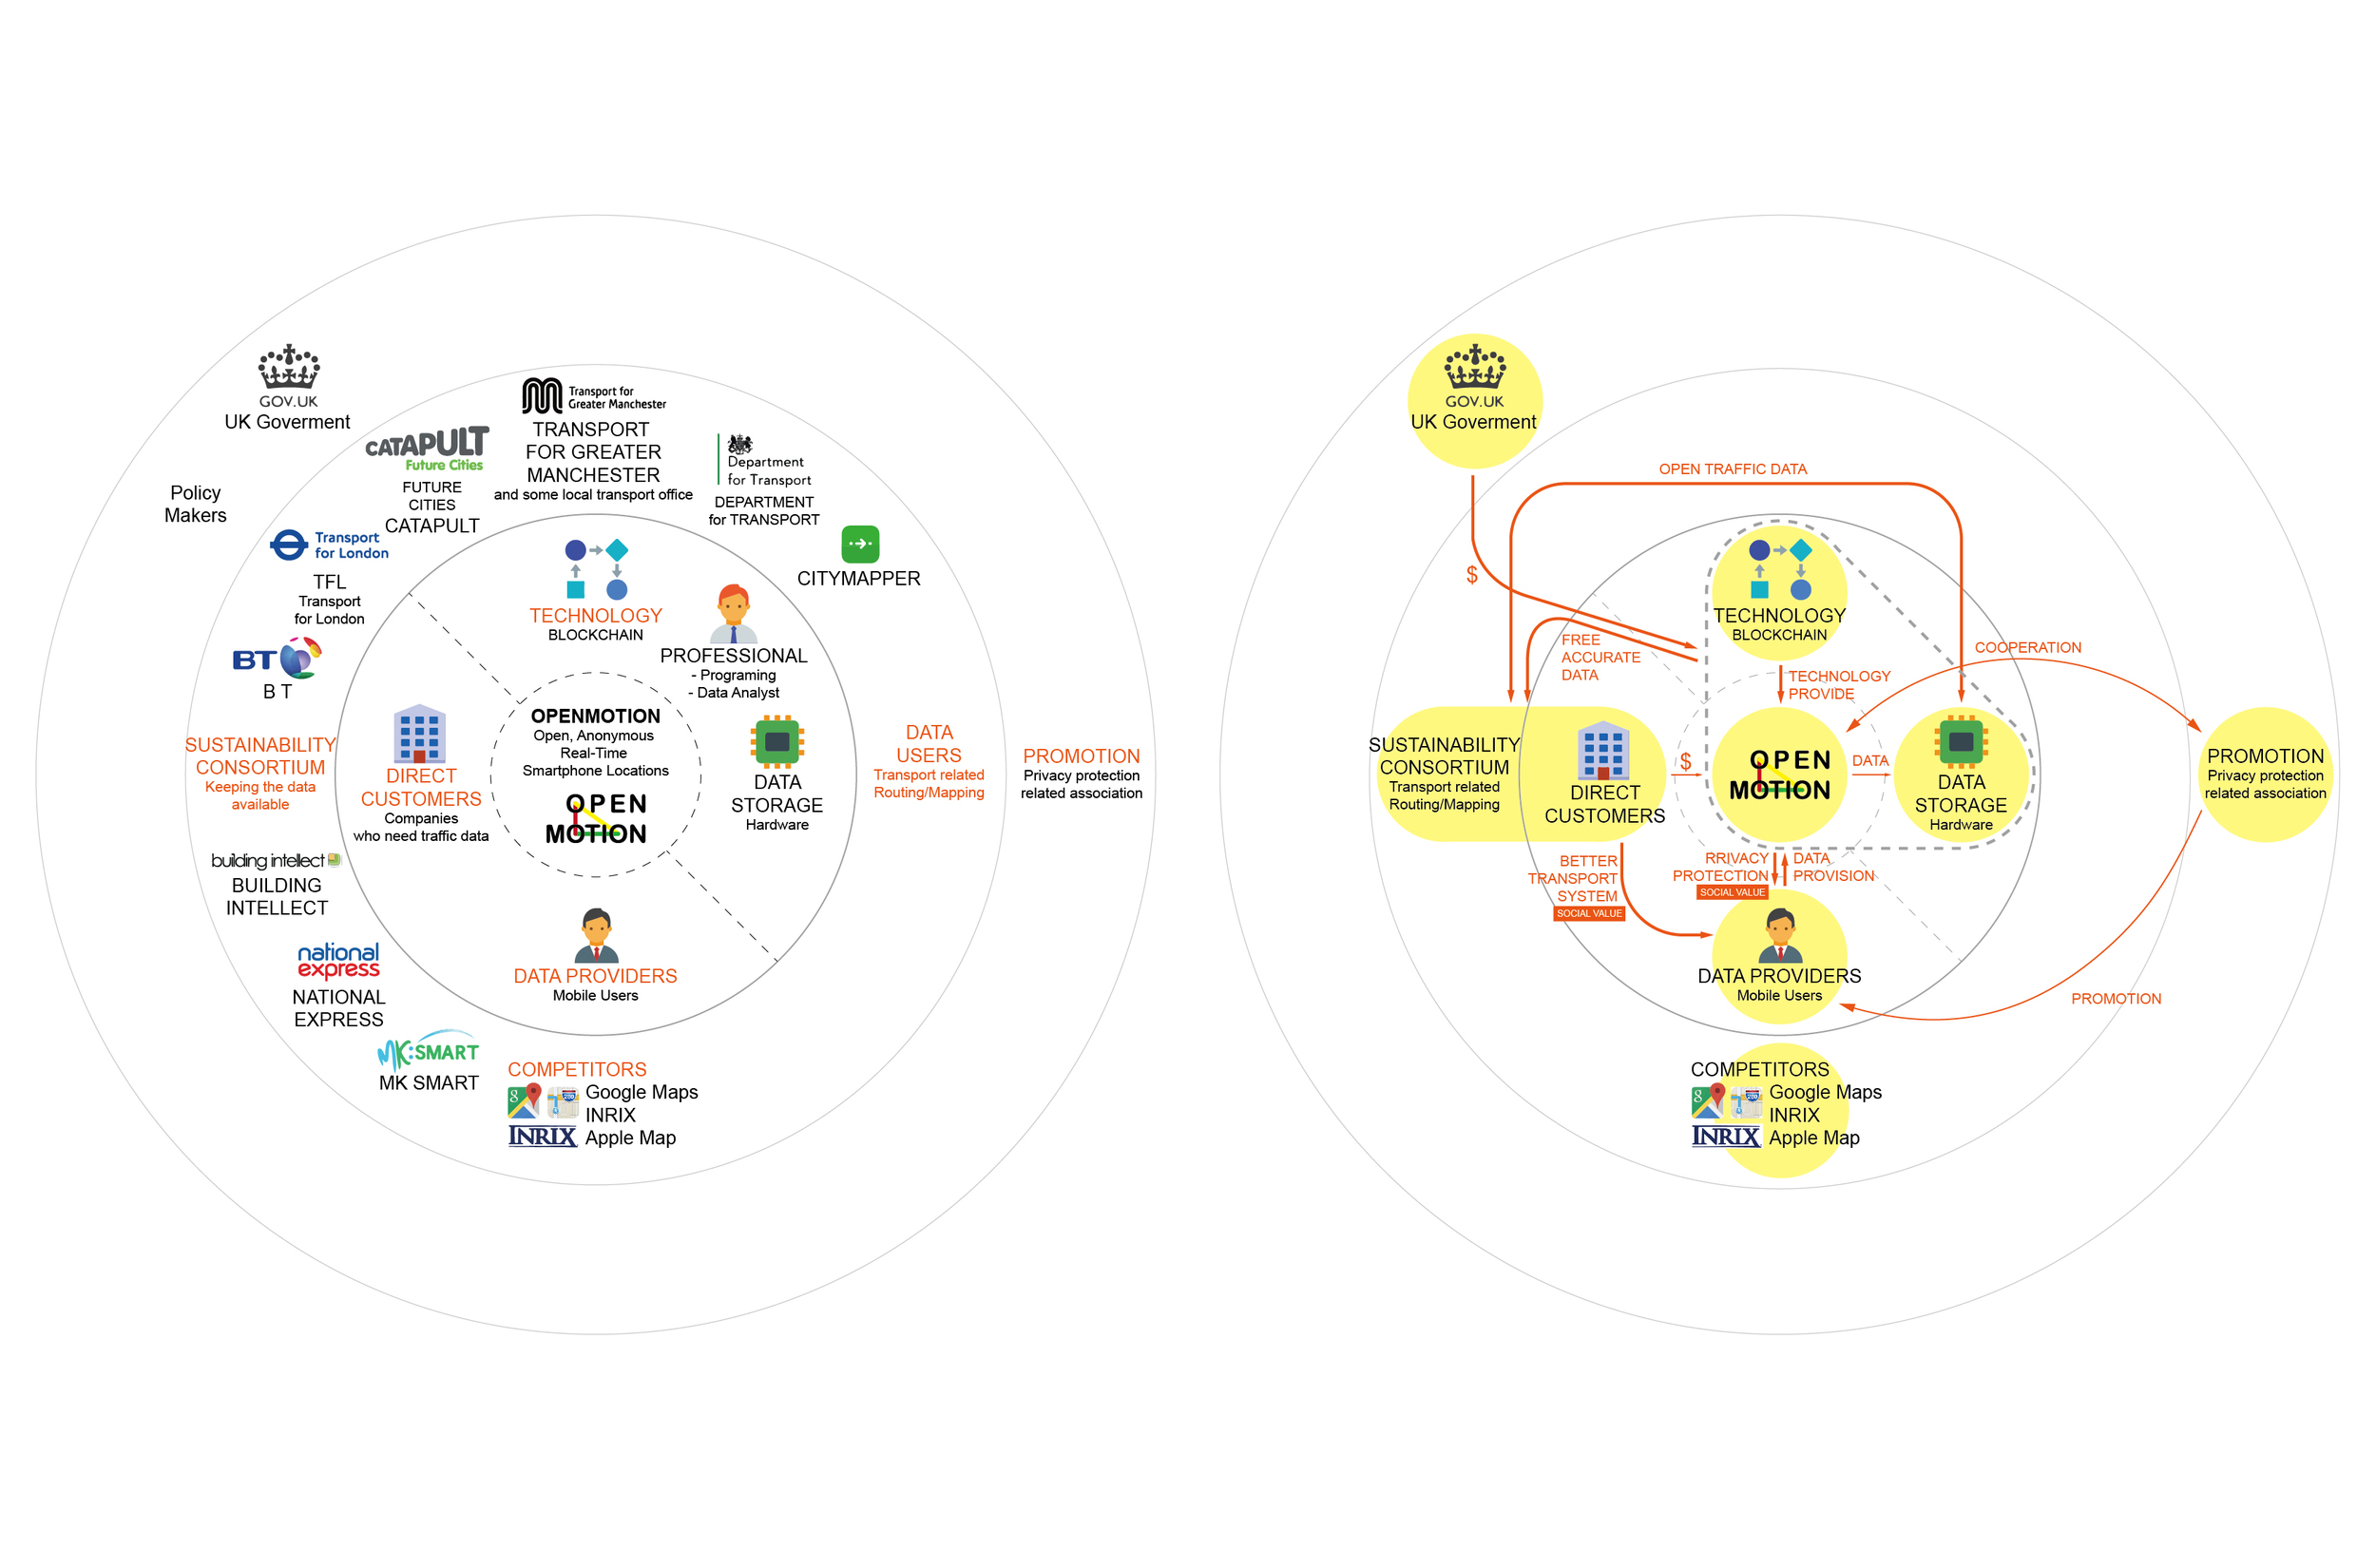 Stakeholdermap and value proposition